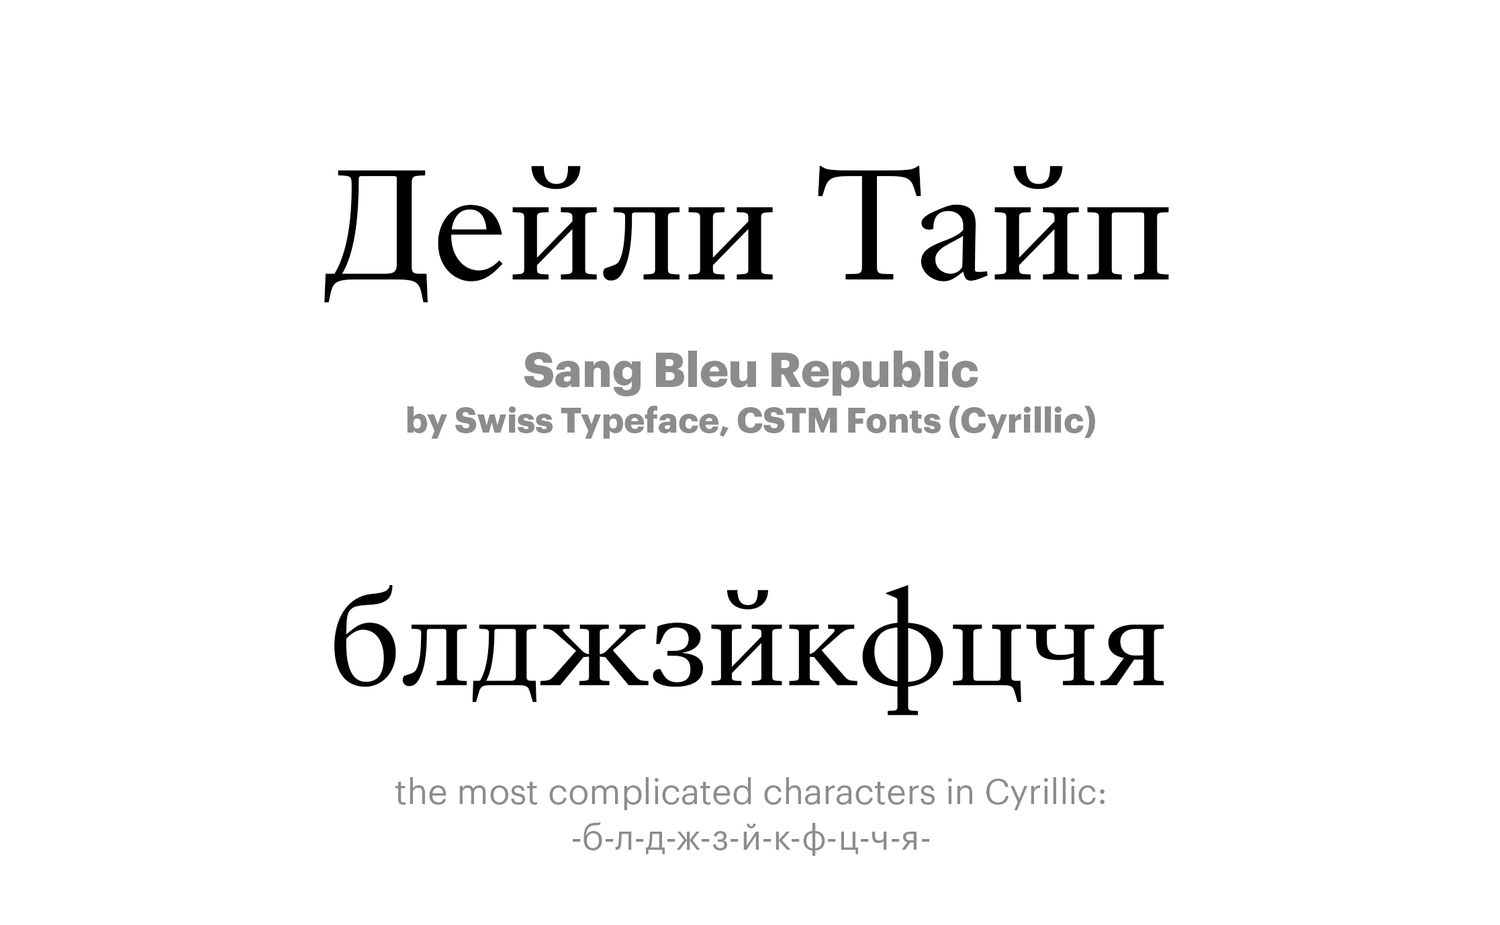 Sang-Bleu-Republic-by-Swiss-Typeface,-CSTM-Fonts-(Cyrillic)